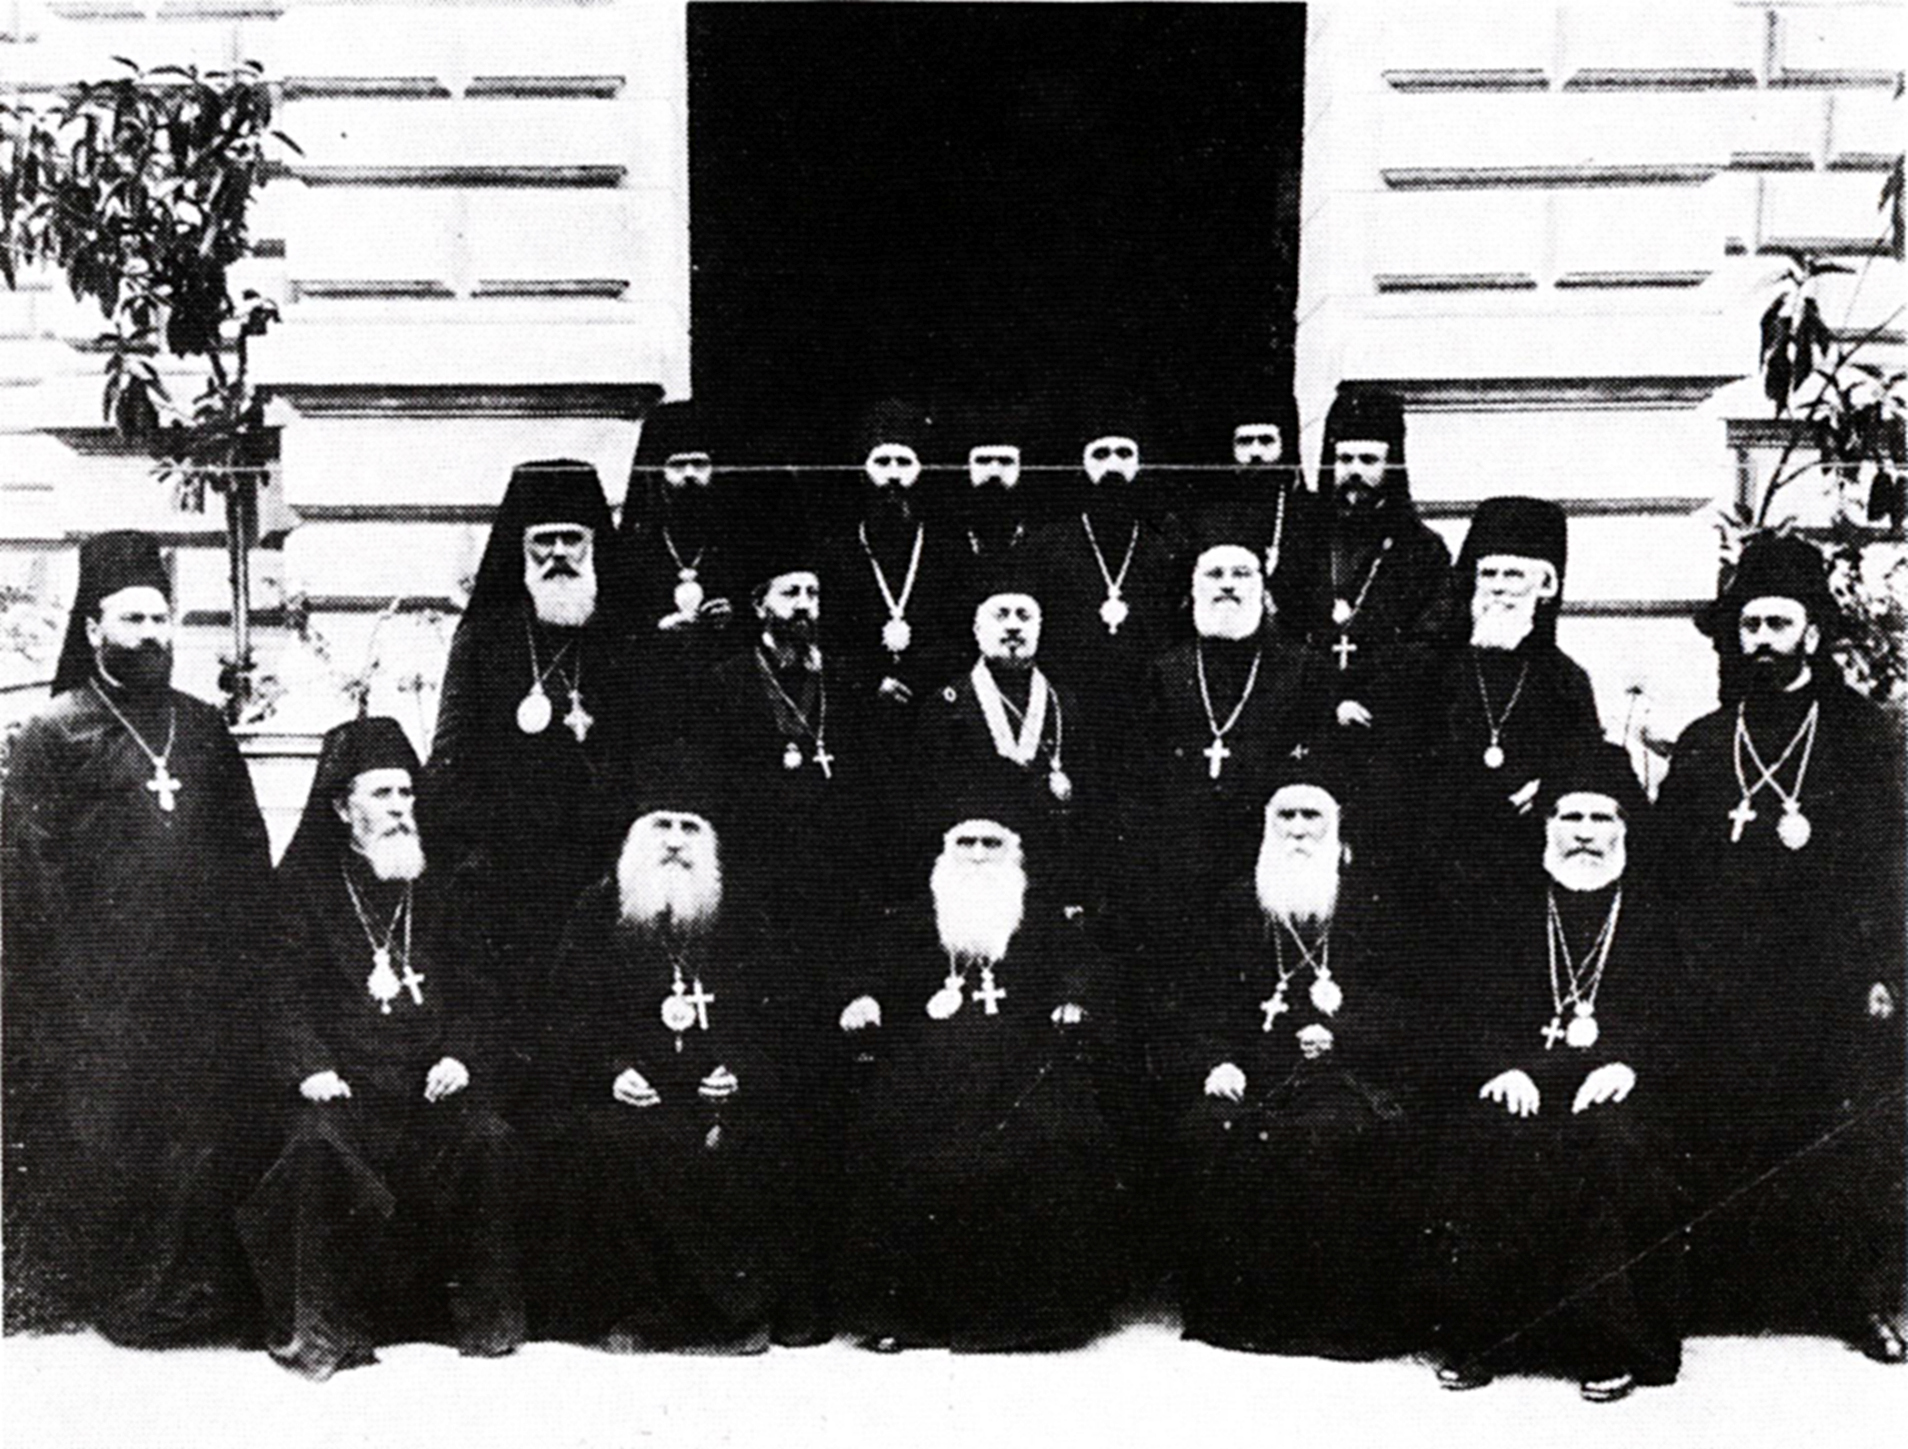 links-between-times-conclusions-perspectives-on-centennial-of-the-russian-church-abroad